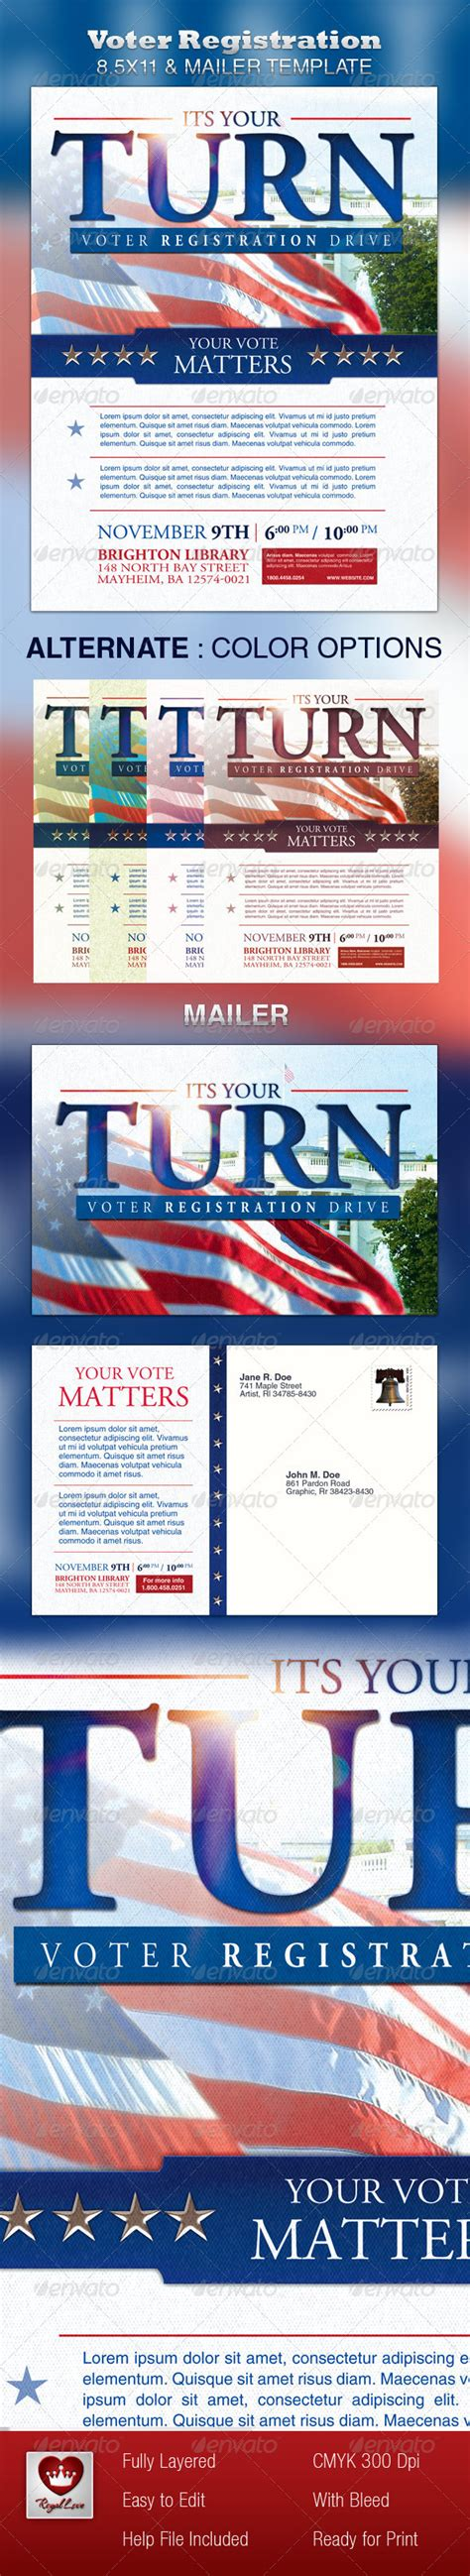 voter registration card template candidate card mailer template 187 dondrup